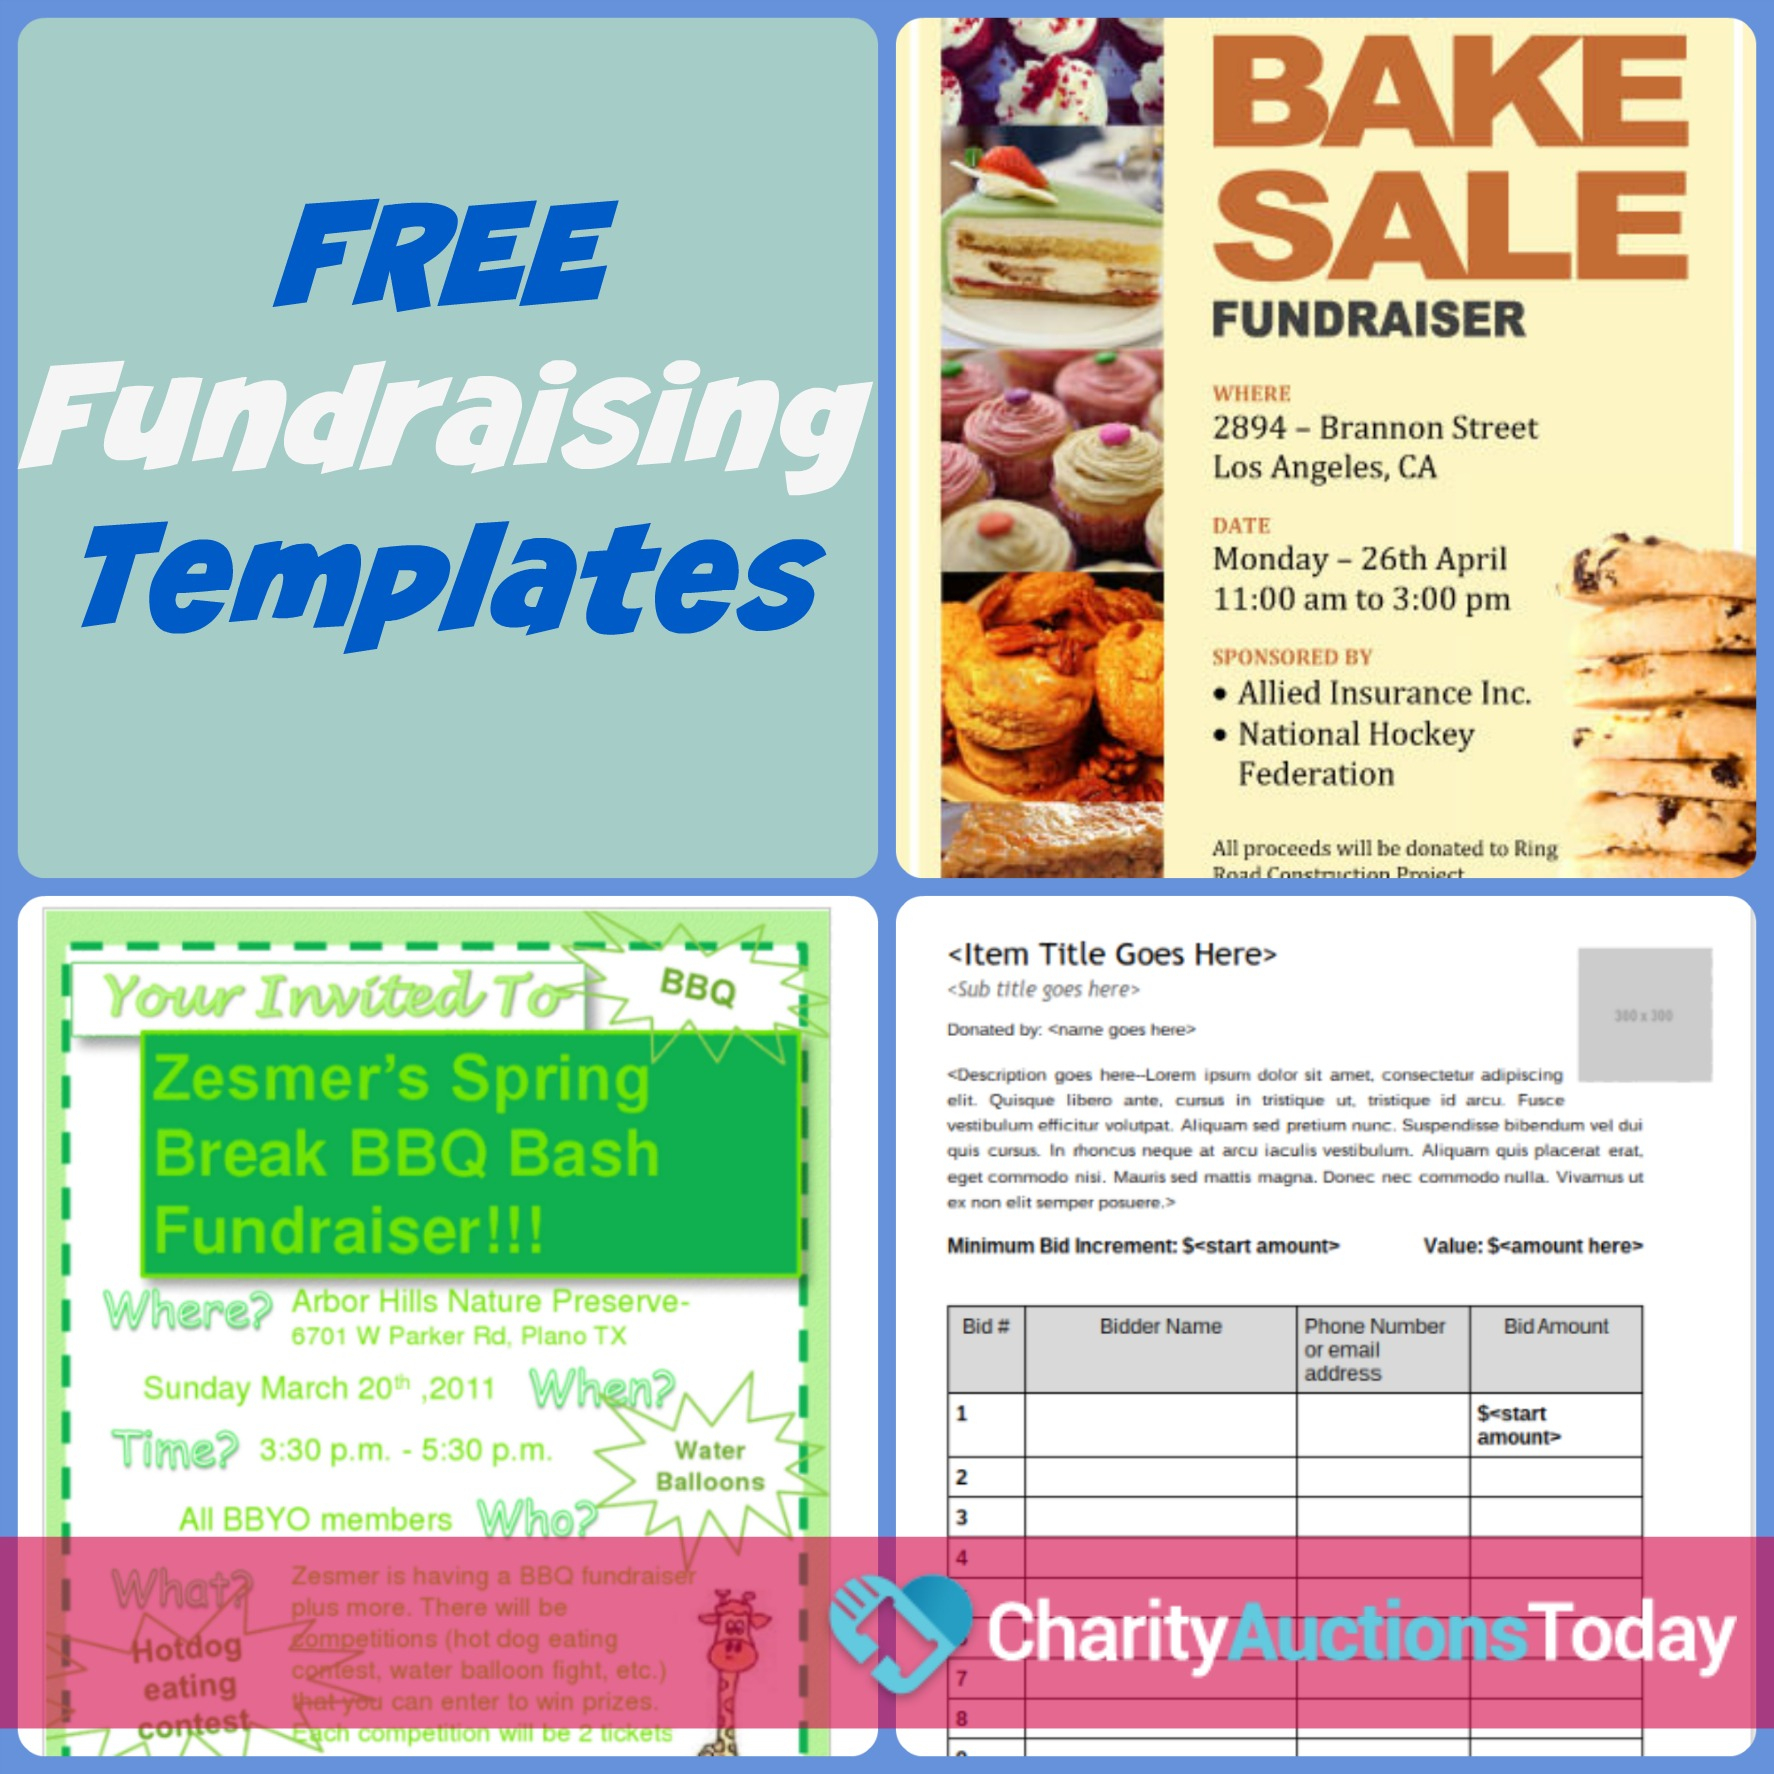 Free Fundraiser Flyer | Charity Auctions Today - Create Free Printable Flyer